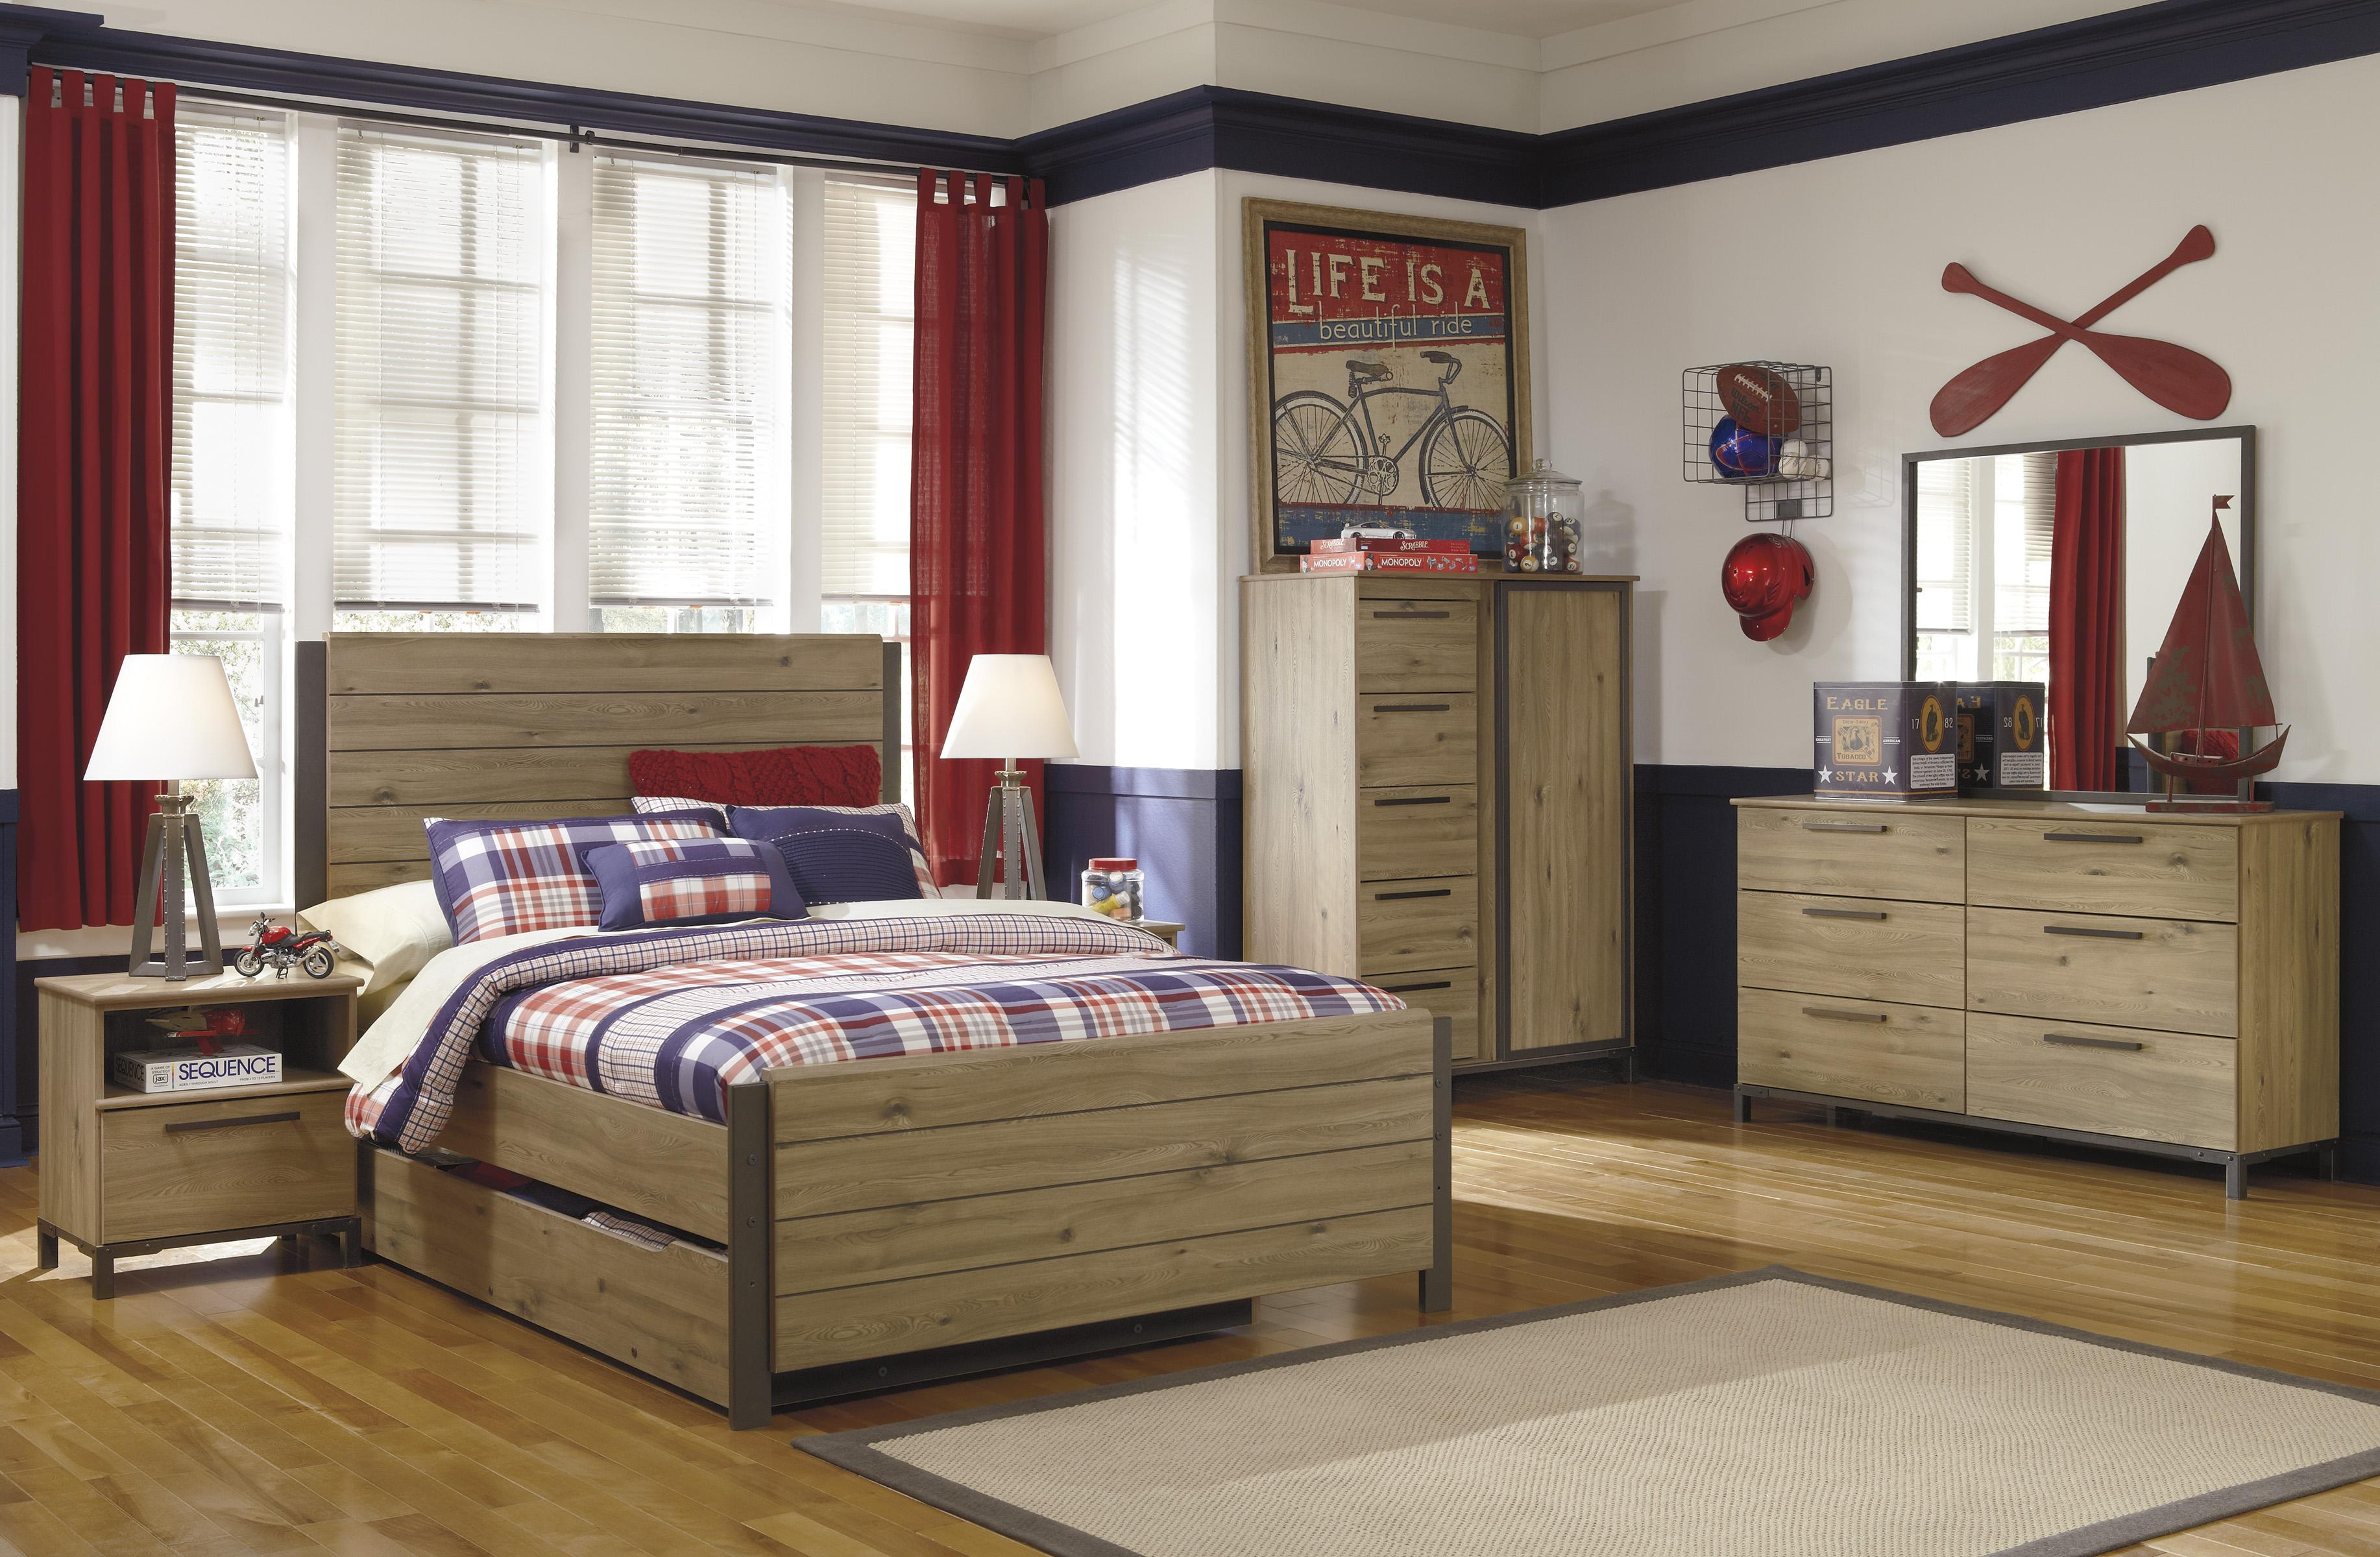 Signature Design by Ashley Dexifield Full Bedroom Group - Item Number: B298 F Bedroom Group 3